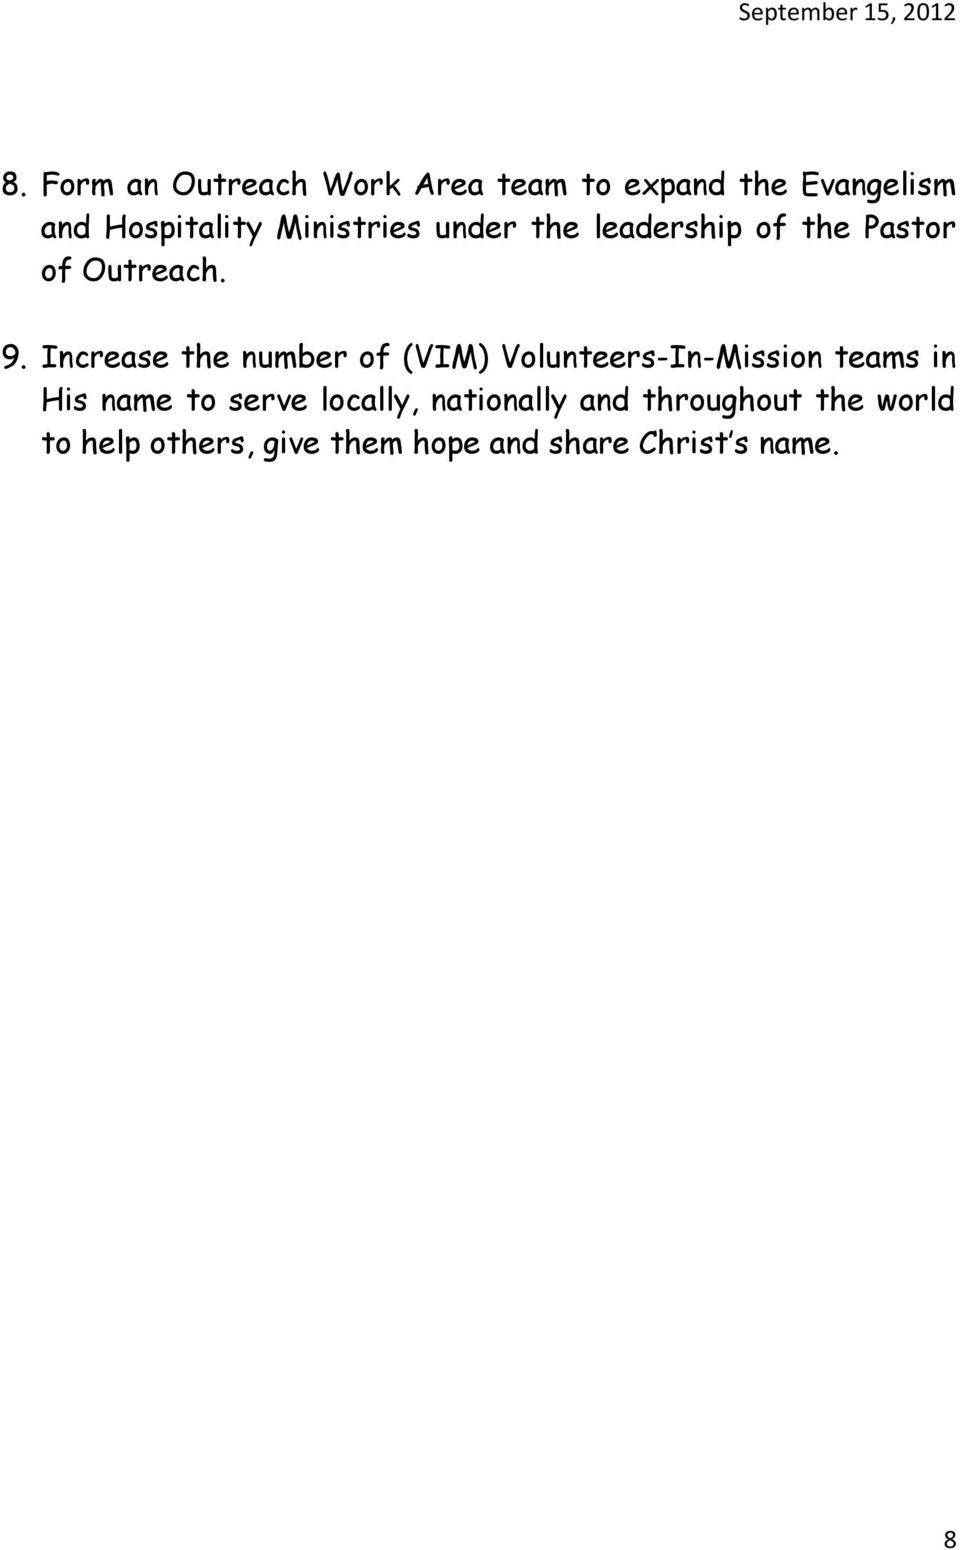 Increase the number of (VIM) Volunteers-In-Mission teams in His name to serve